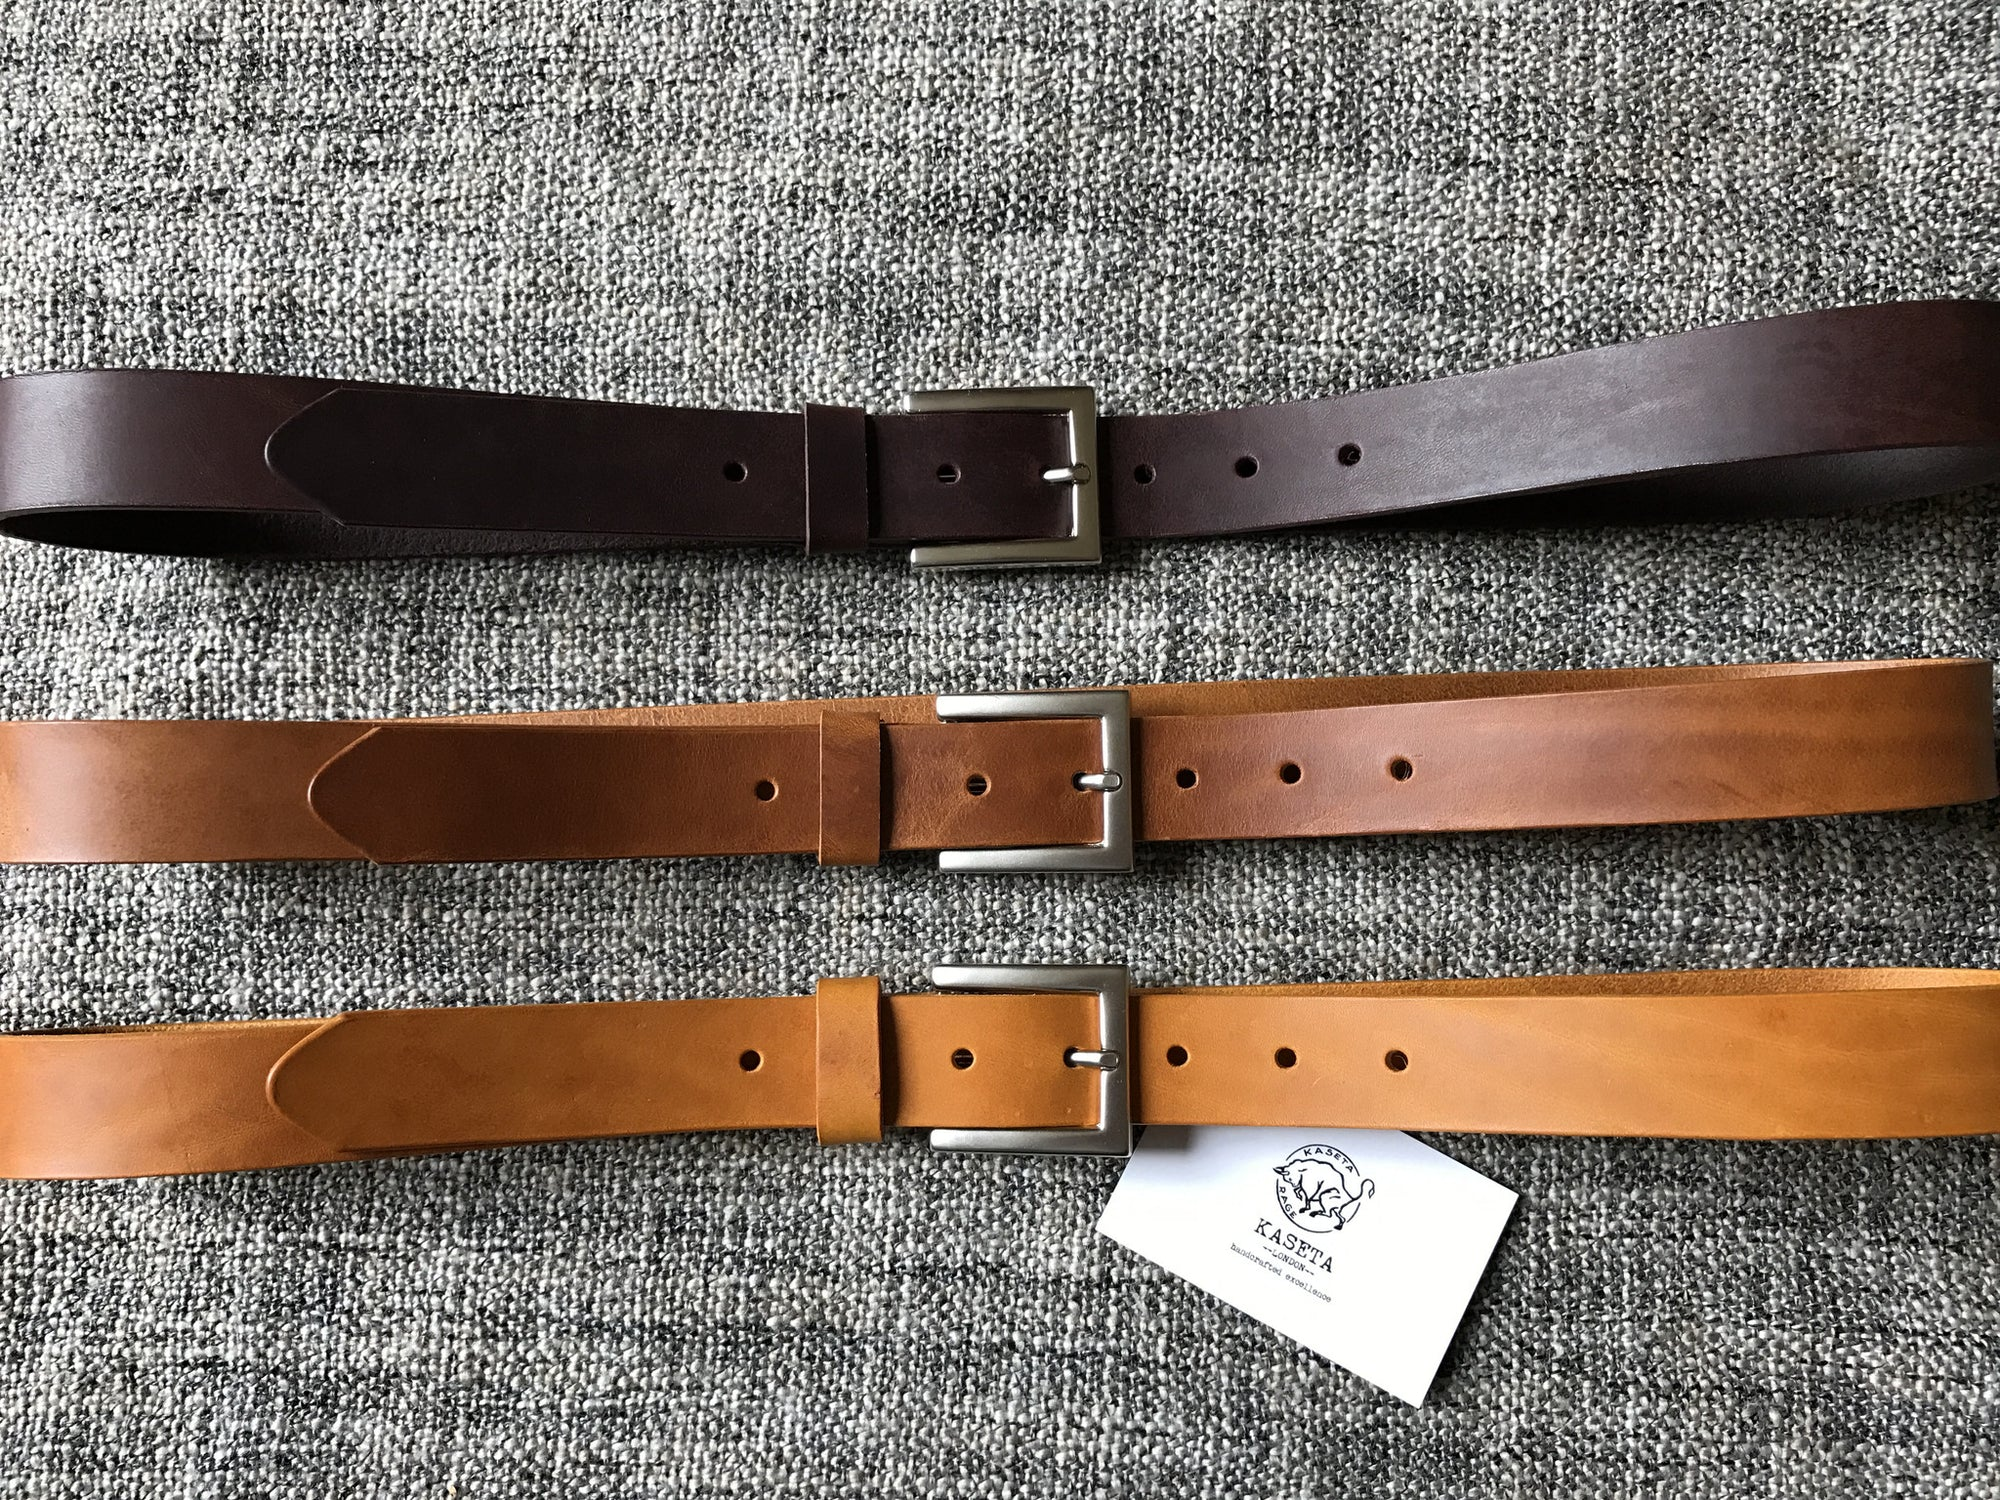 genuine leather belt, unisex belt, rustic belt - KasetaLeather